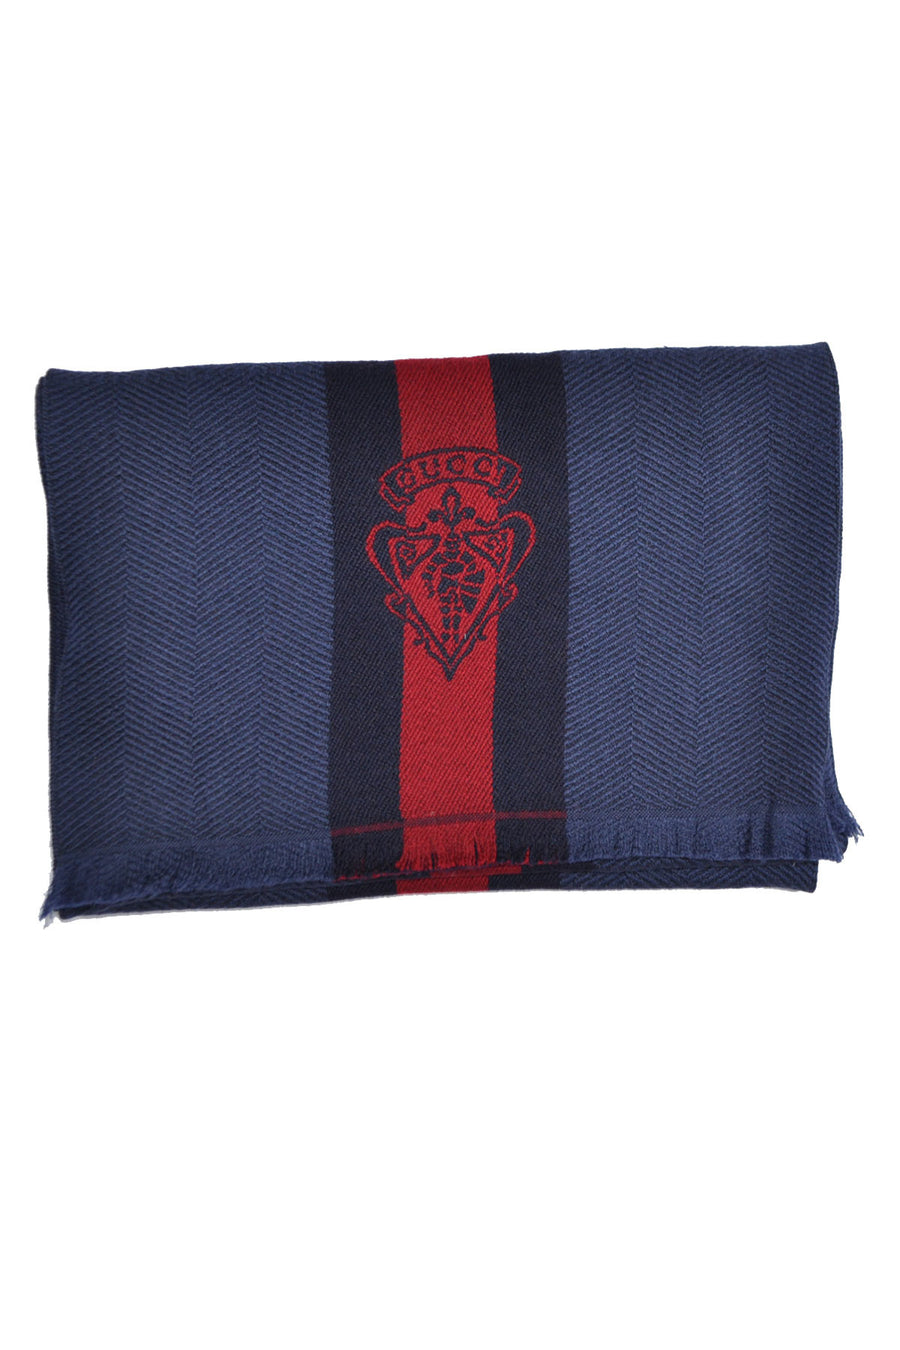 Gucci Scarf Midnight Blue Navy Burgundy Herringbone Stripes & Crest Wool Scarf